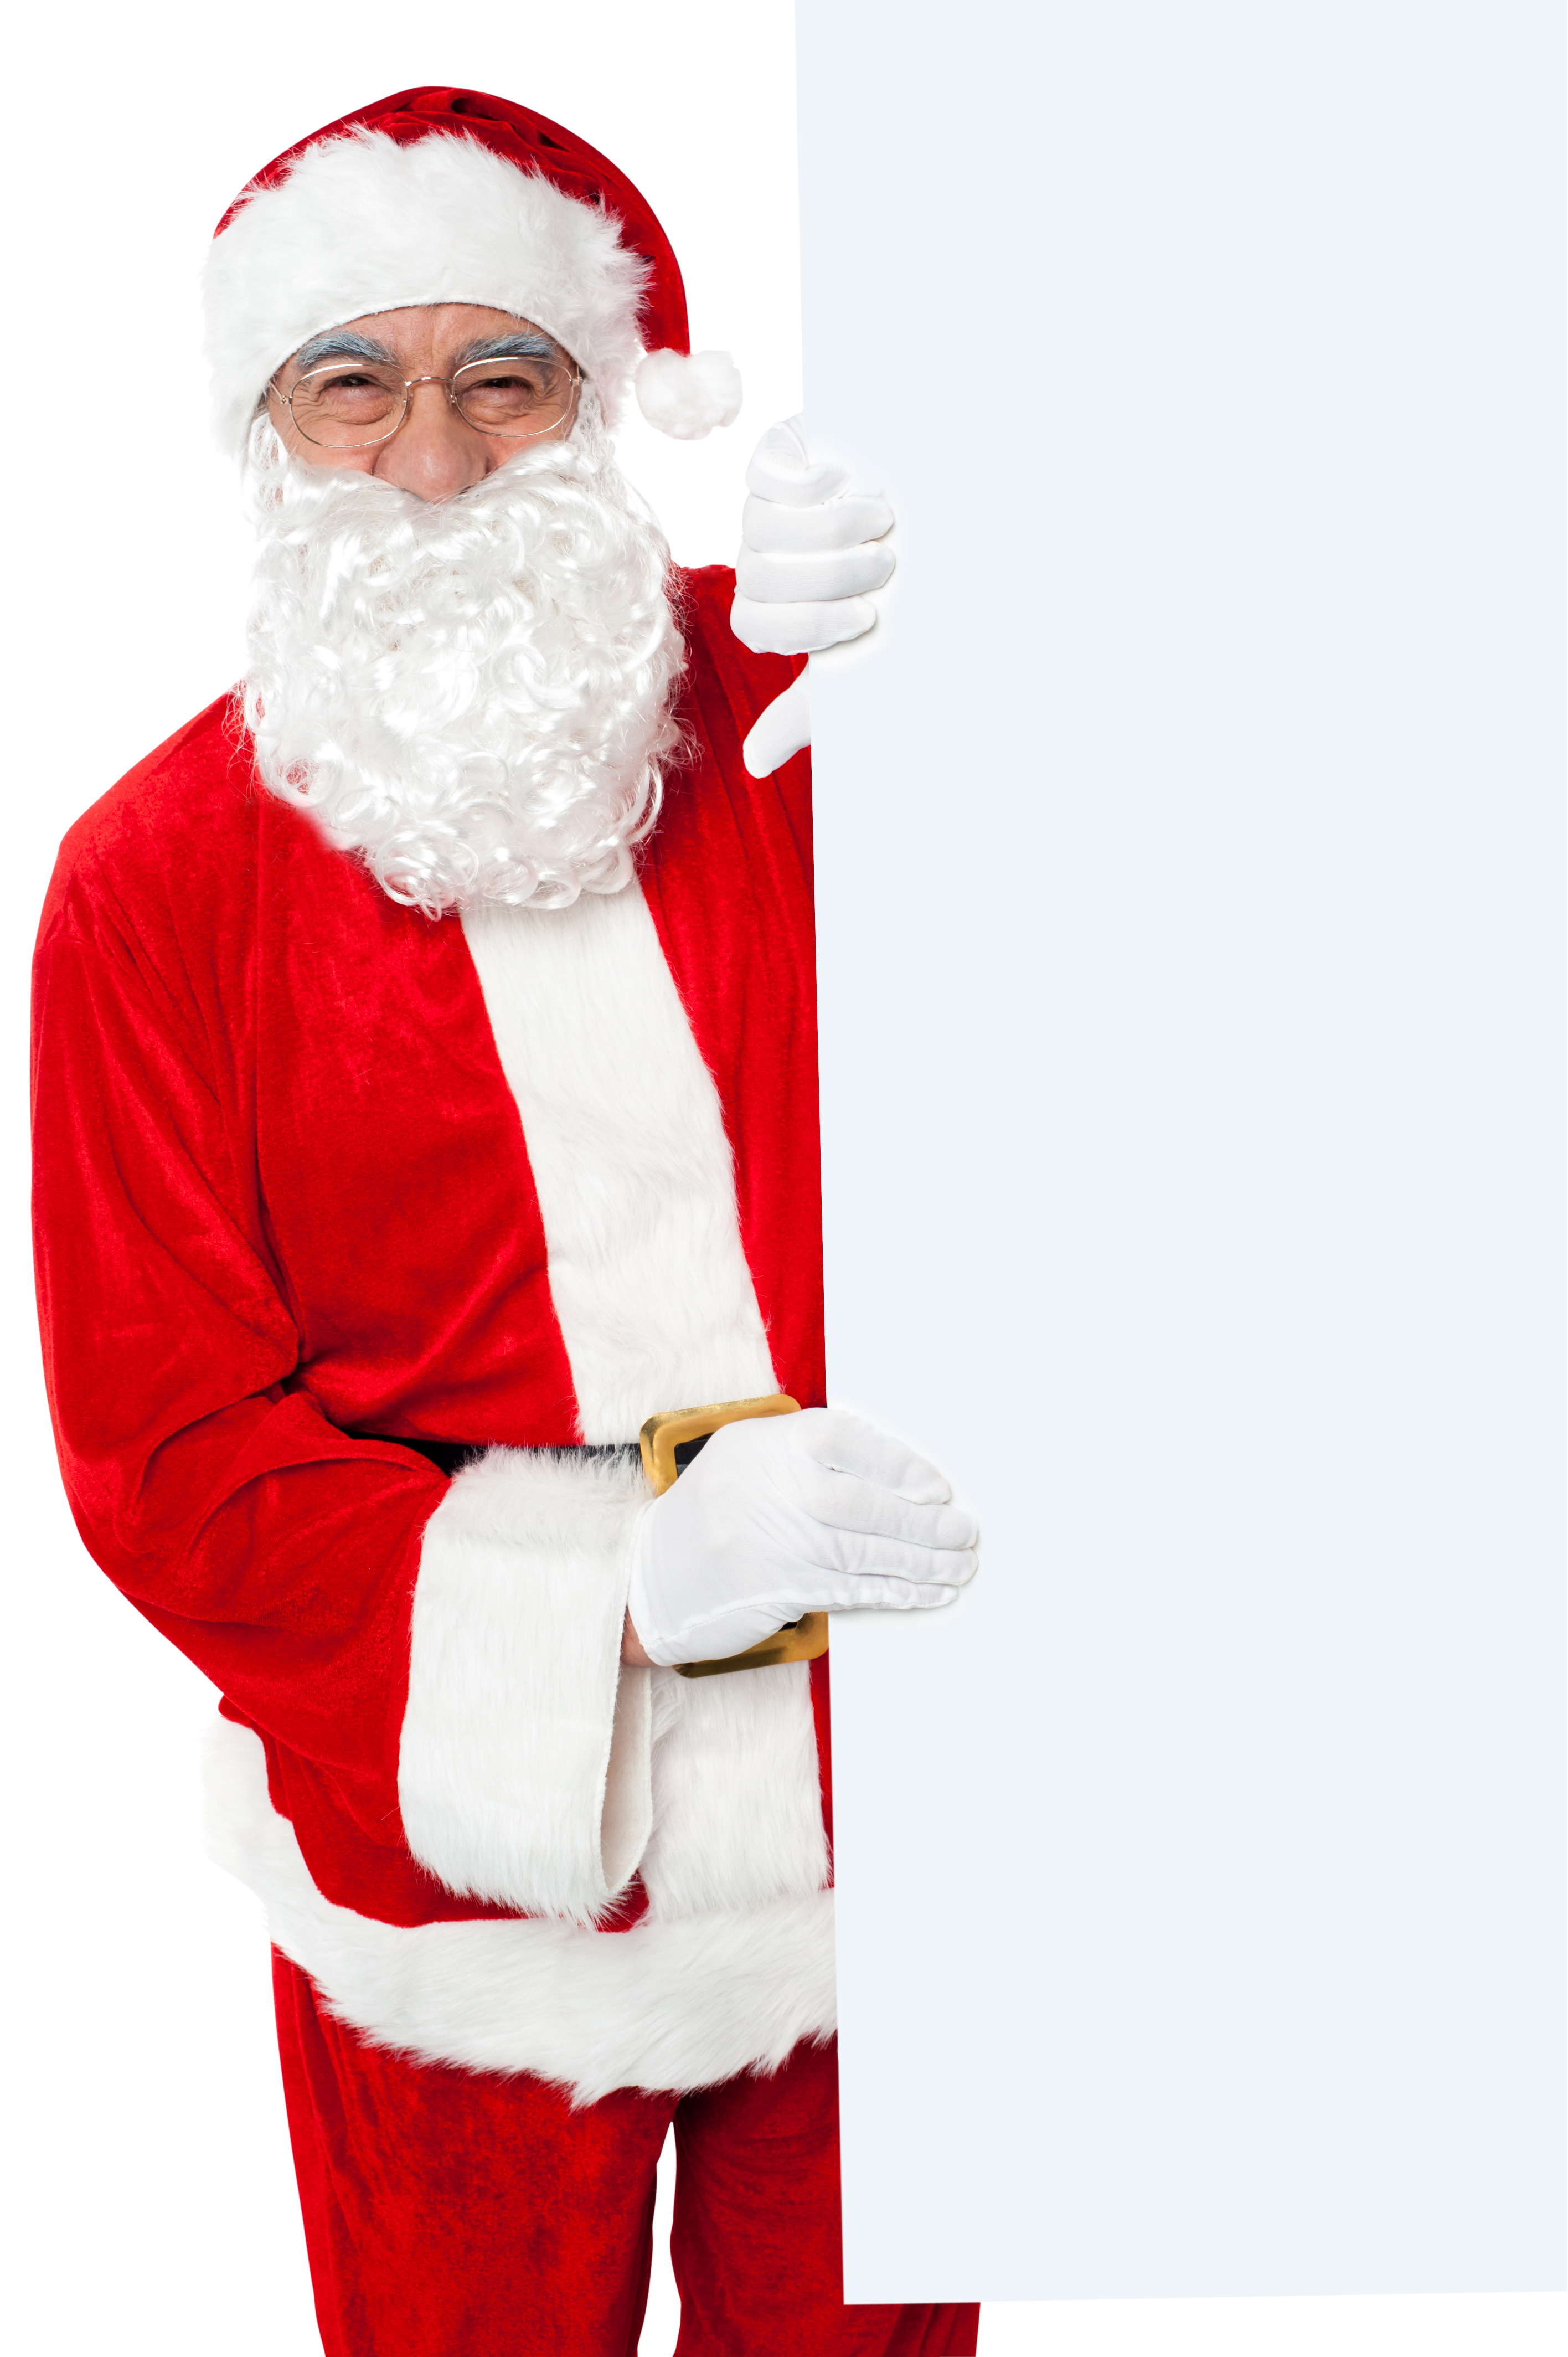 Santa Claus Holding White Paper Vertical PNG Image